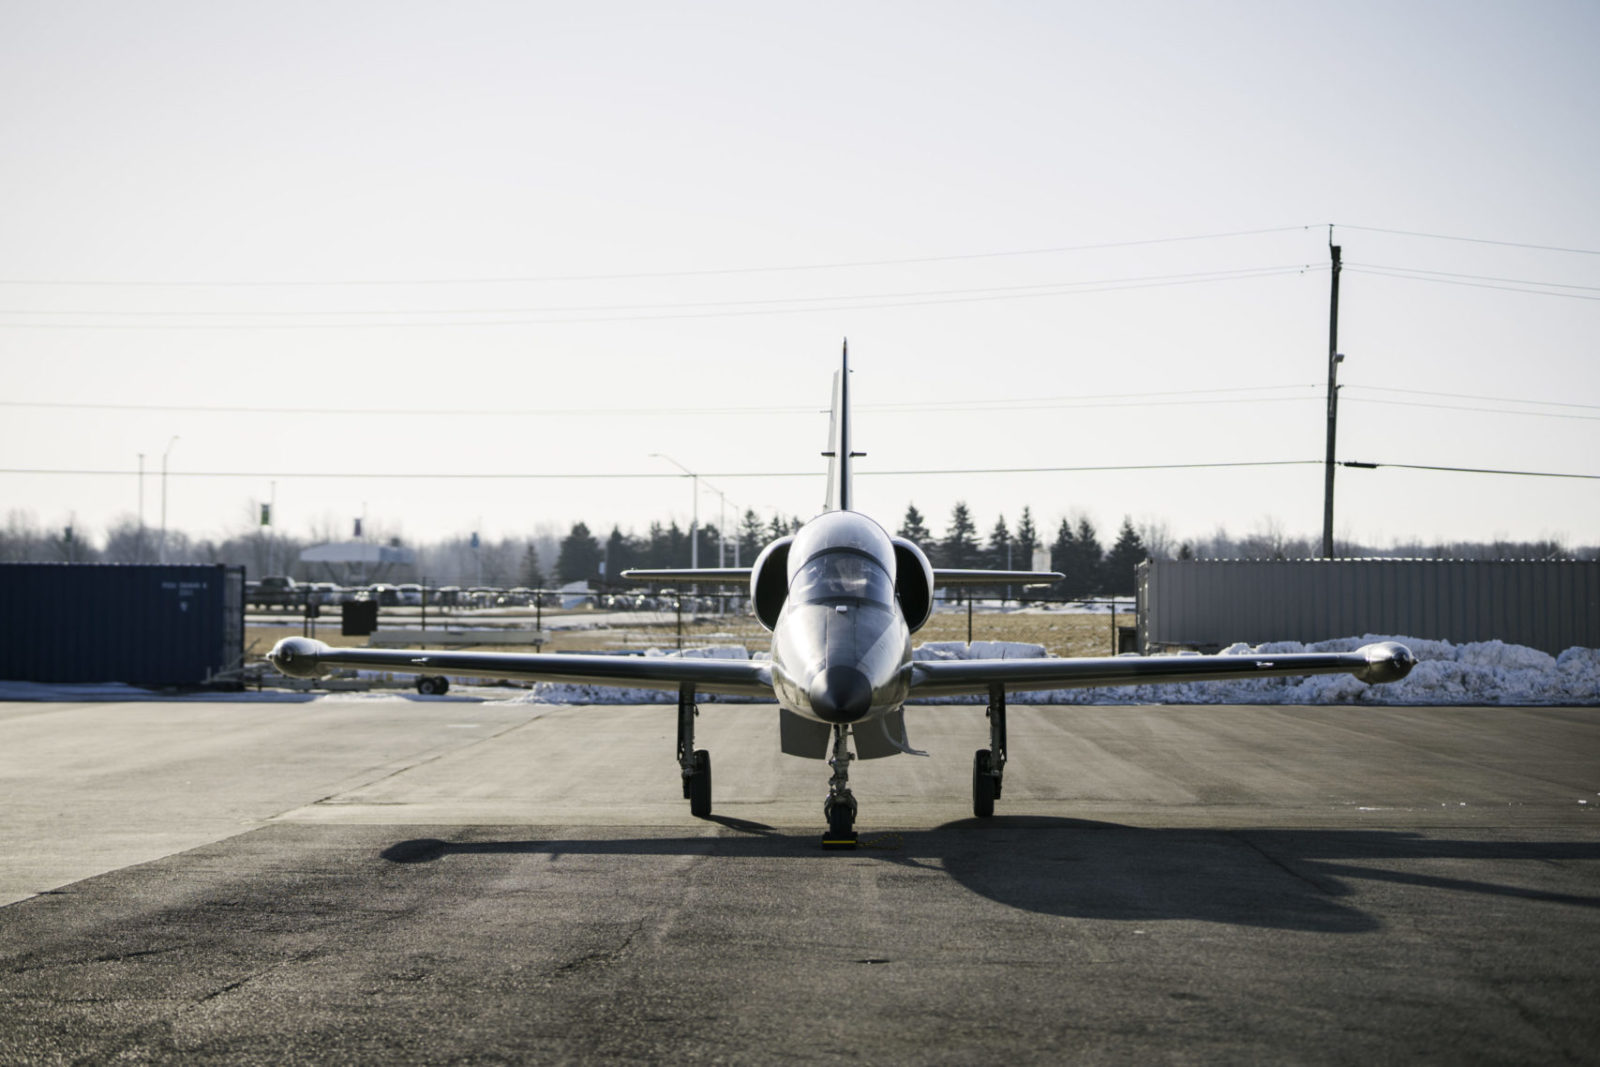 Front view of an L-39 Jet on a runway